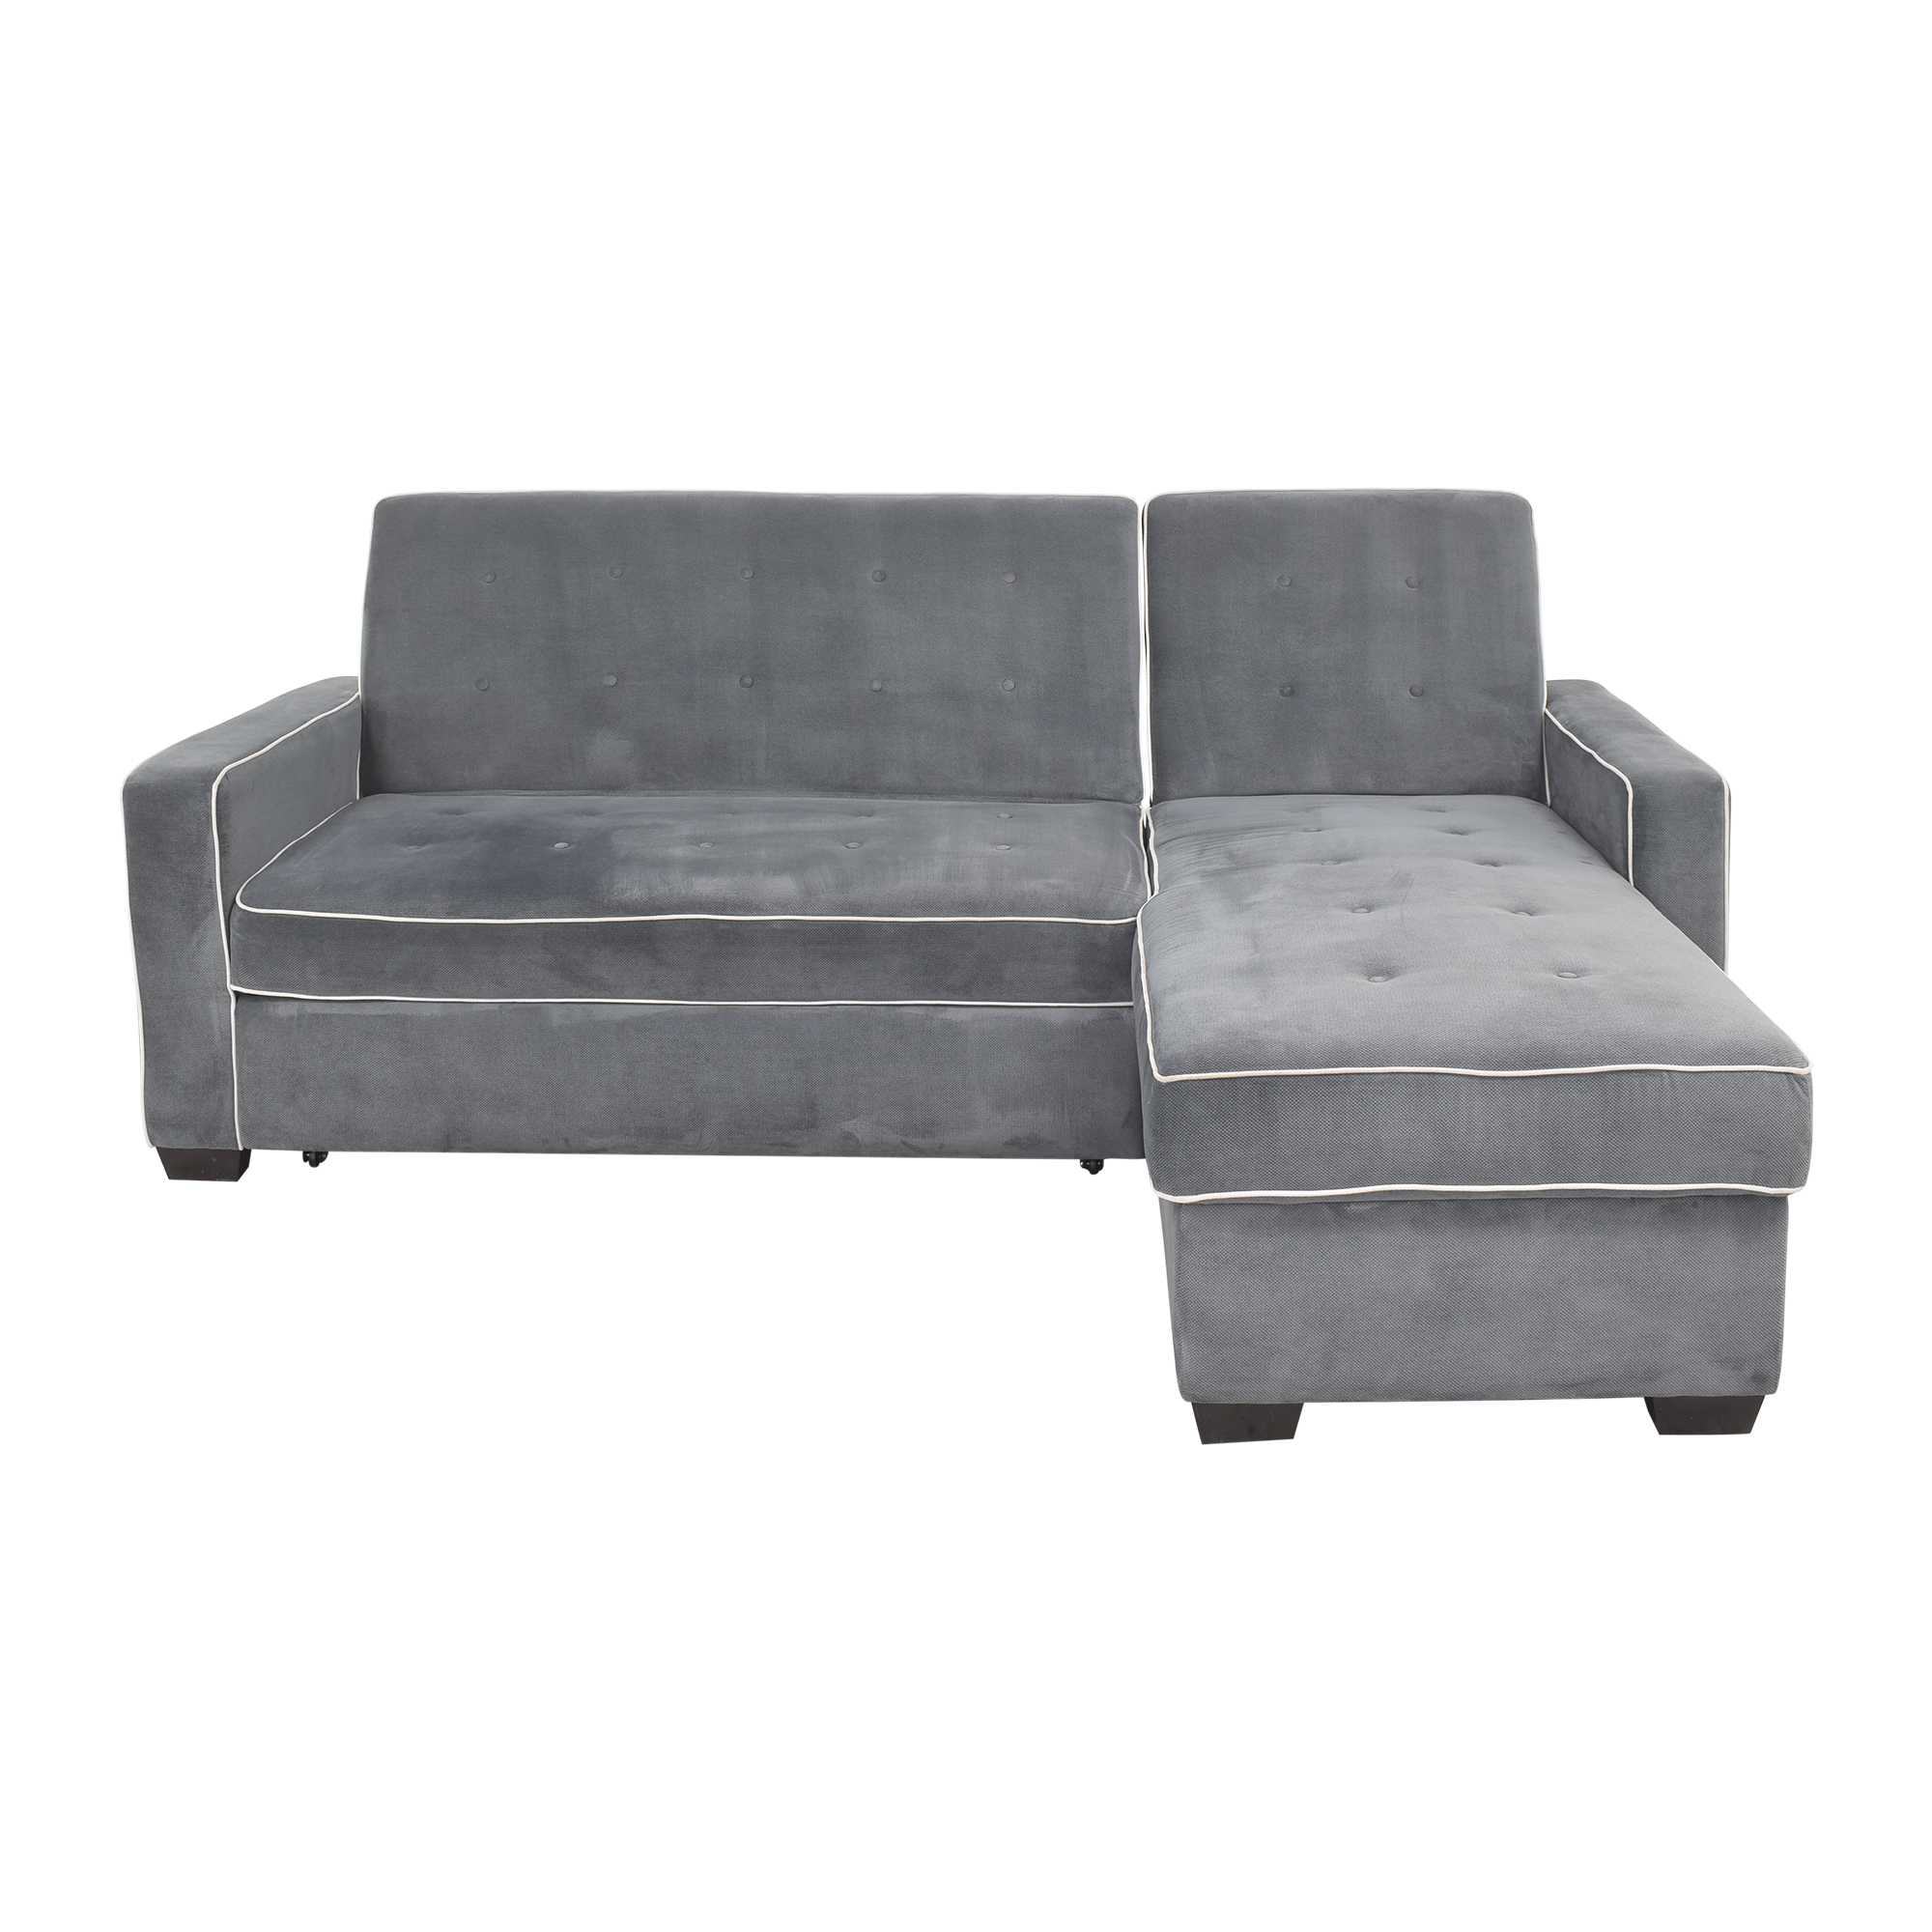 buy Costco Kayden Chaise Sectional Sleeper Sofa Costco Sectionals